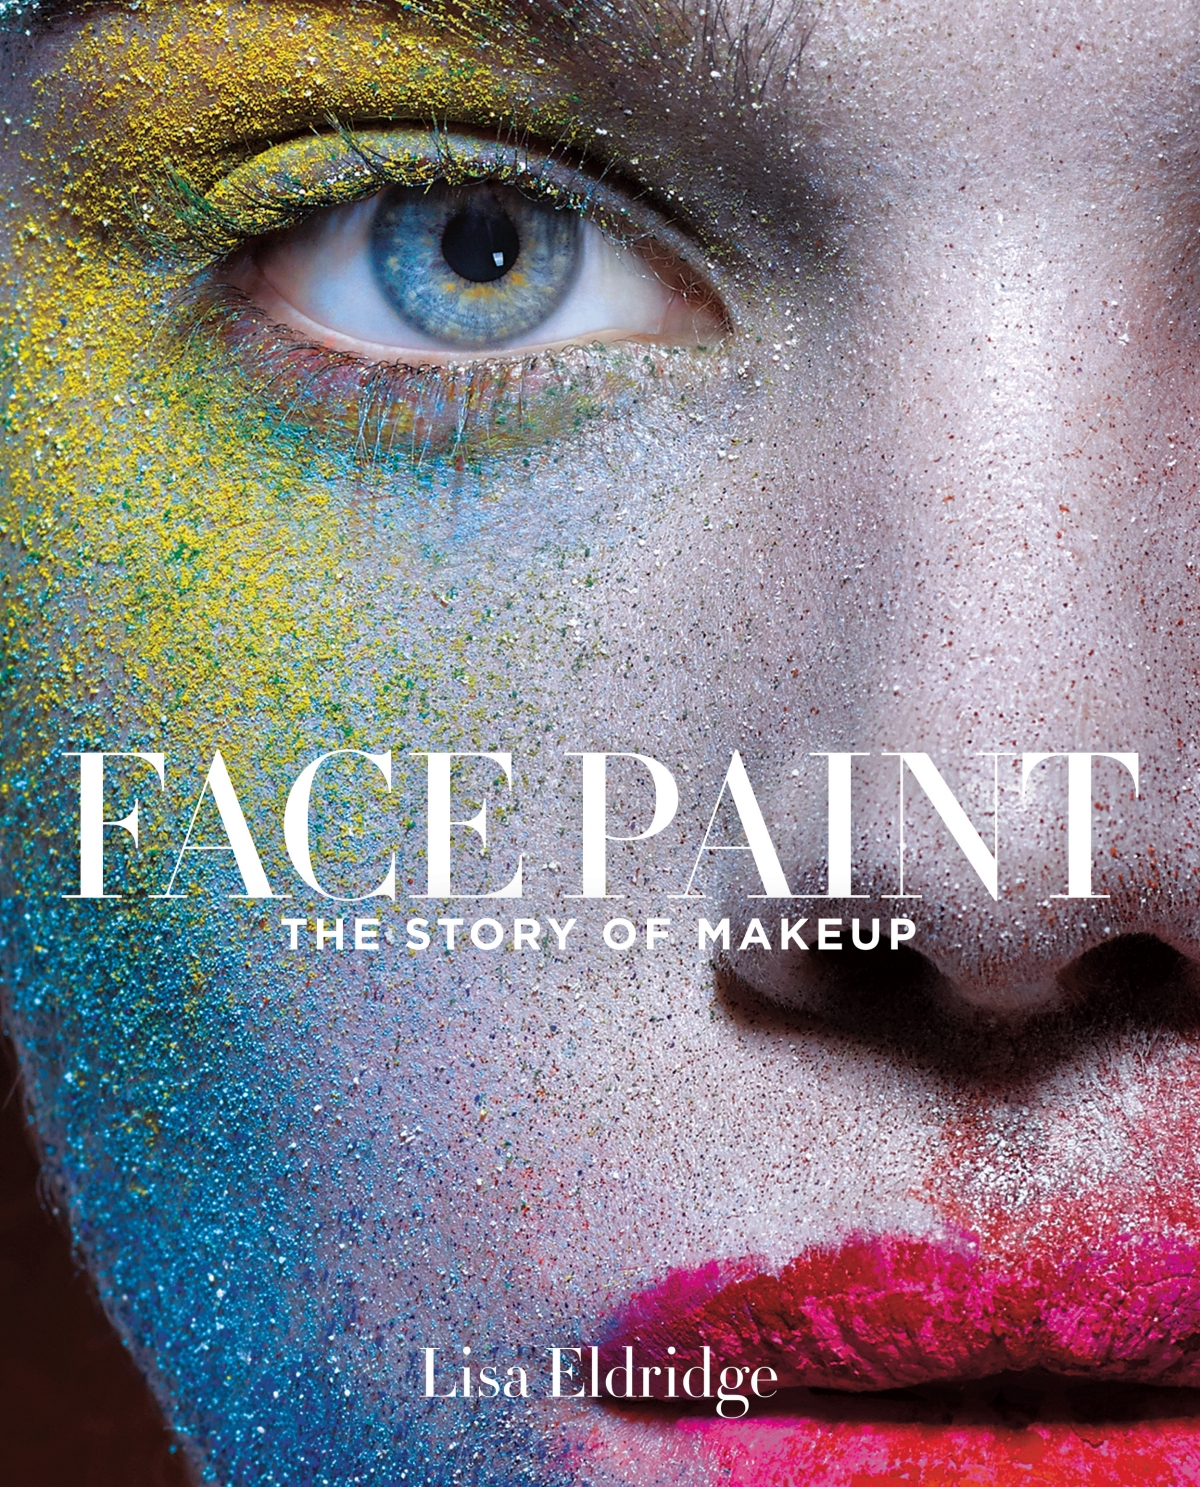 Lisa Eldridge new book Face paint